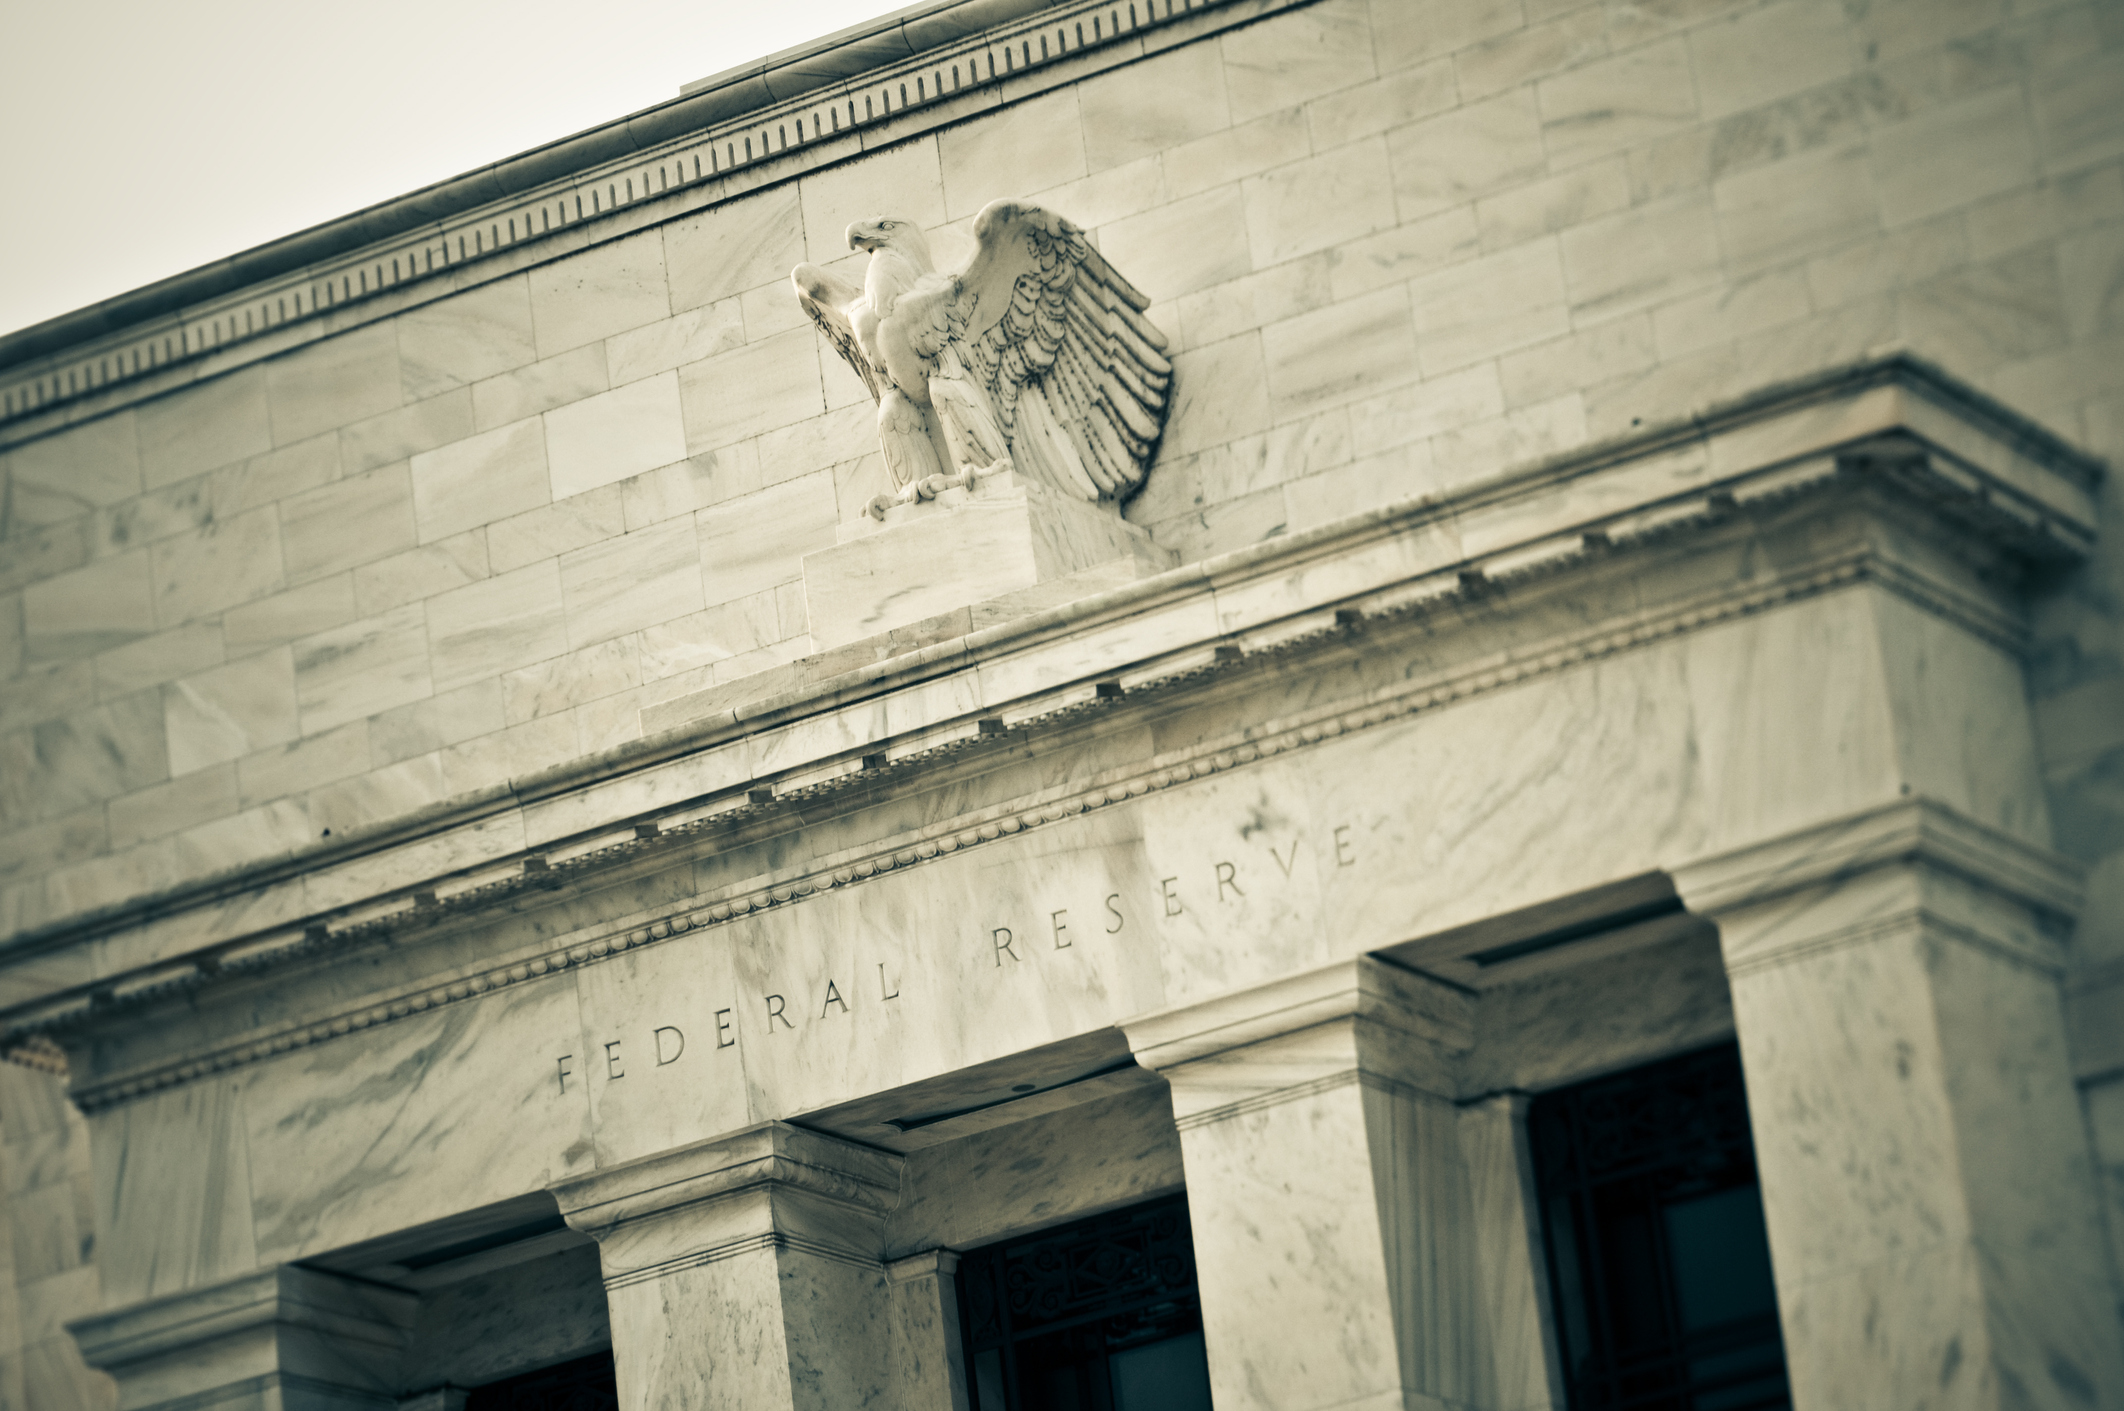 The Fed's plan to speed up payments despite banks